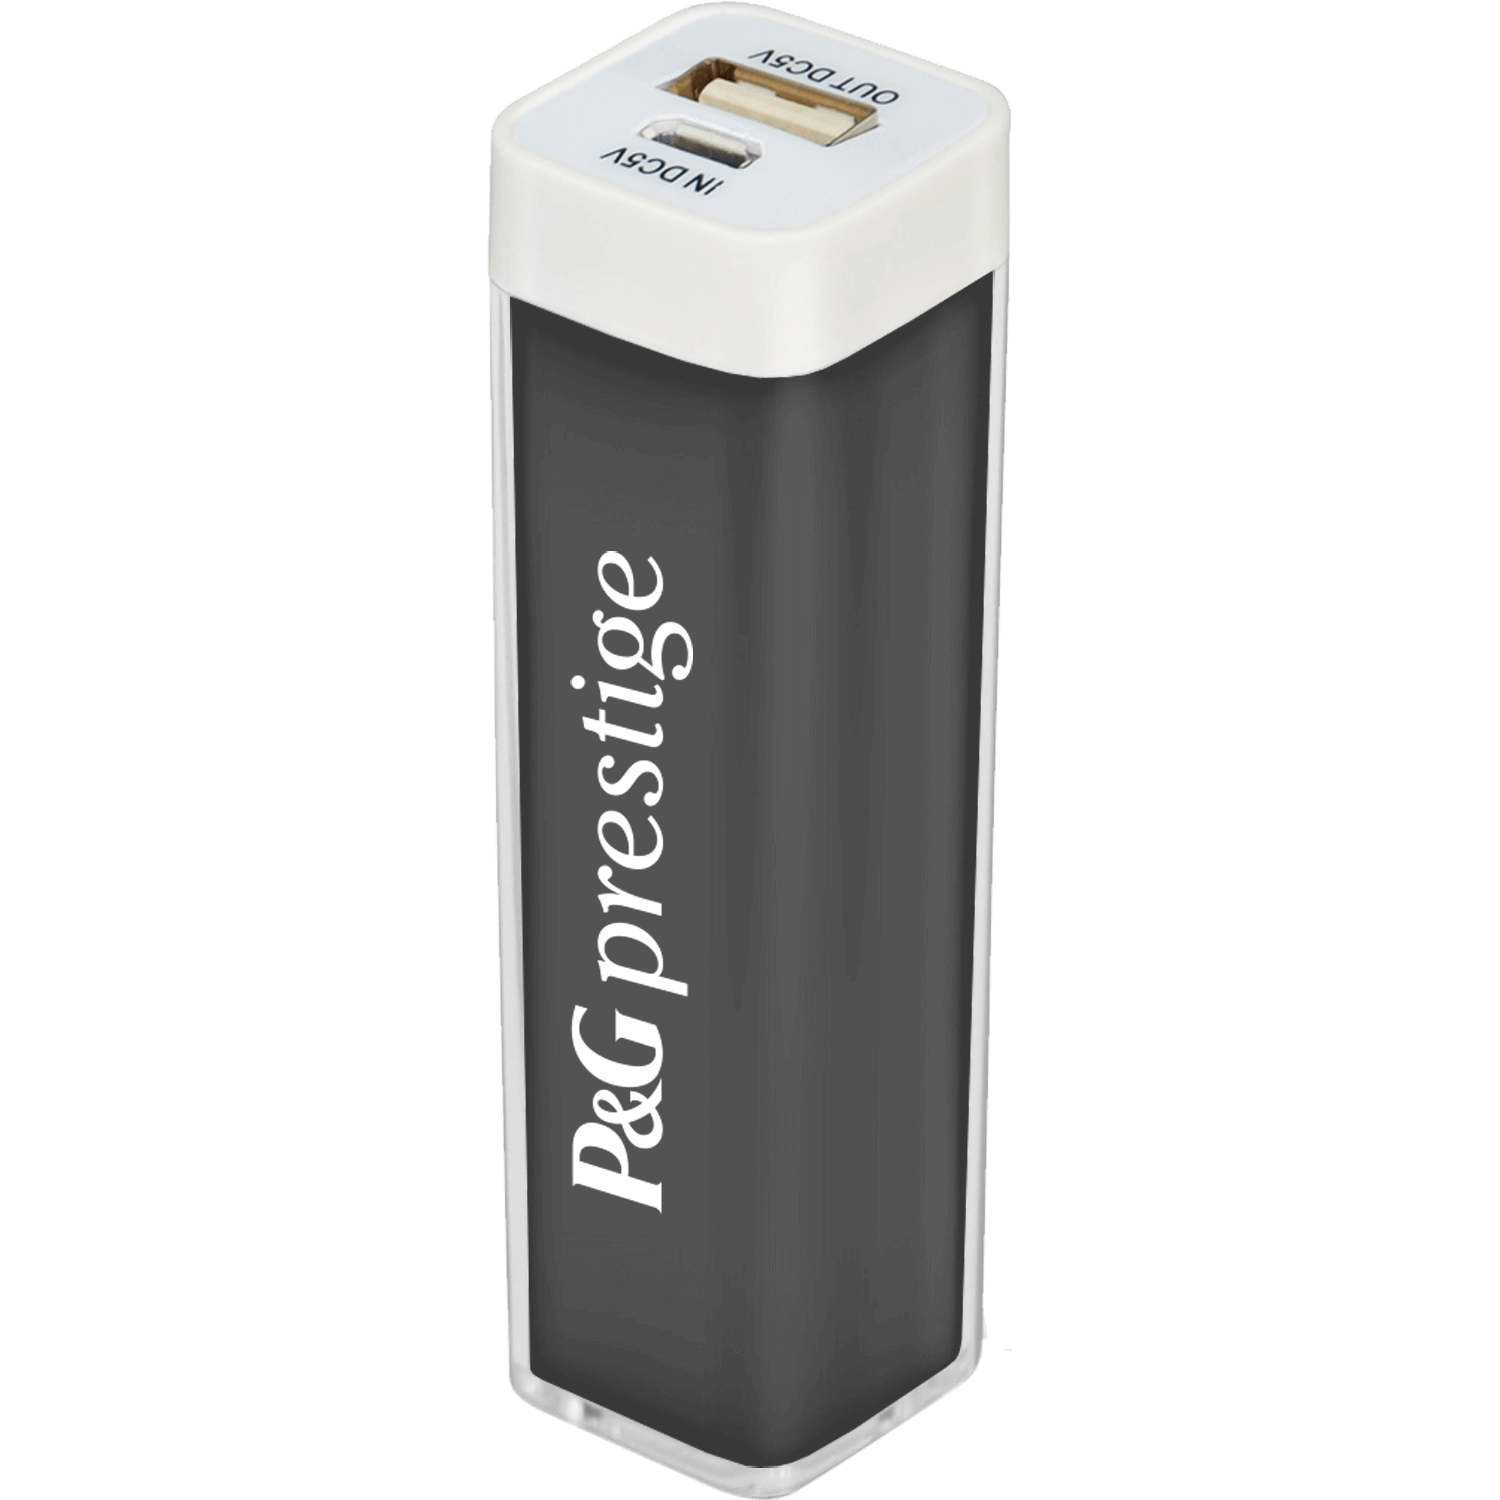 Tube Power Bank Charger